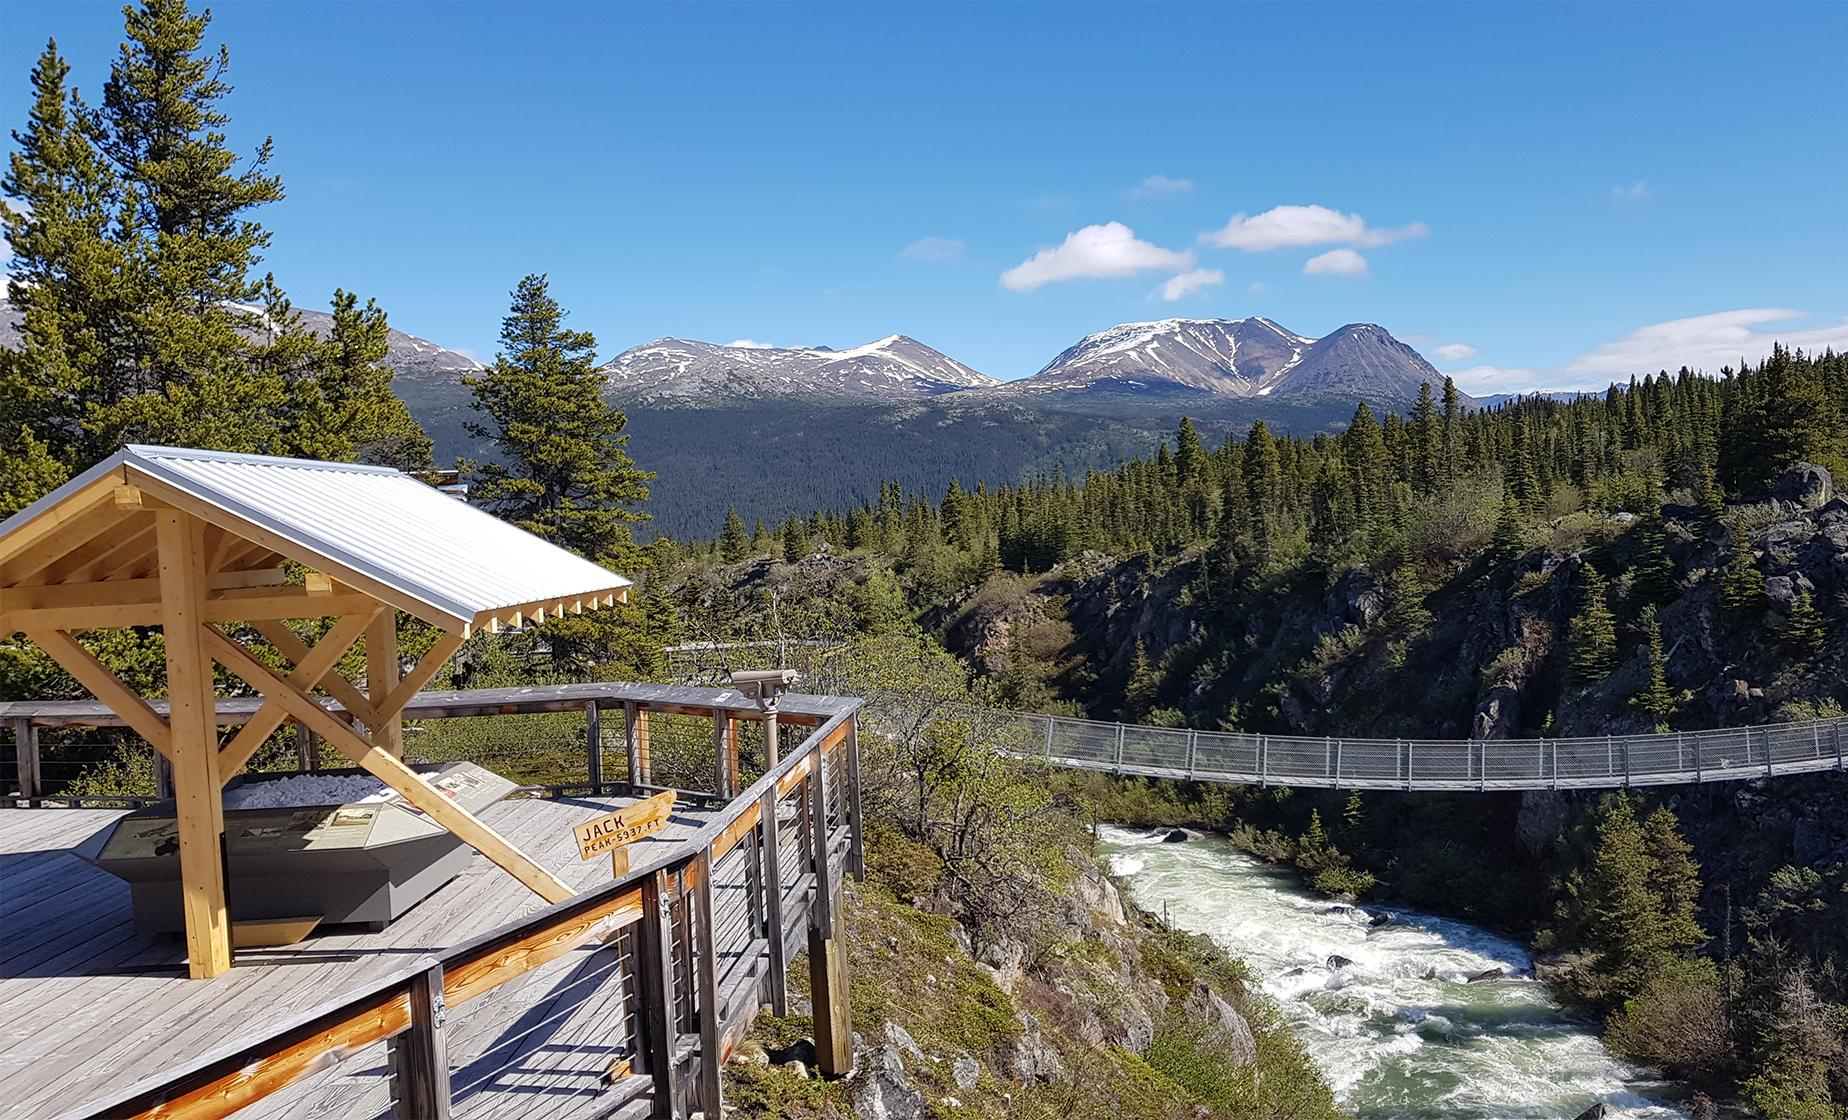 Yukon Suspension Bridge by Jeep